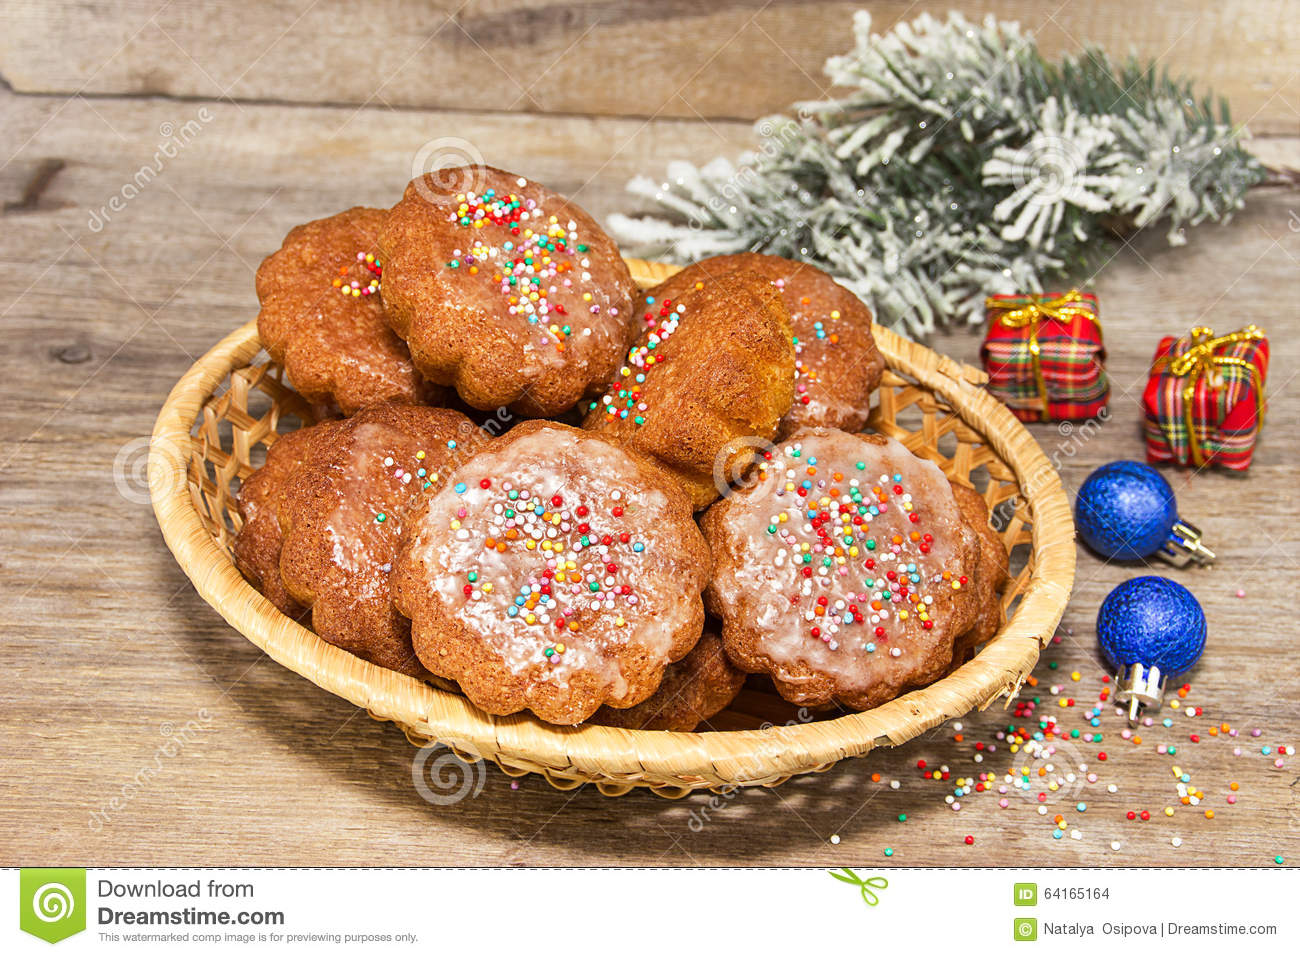 Homemade Muffins In The New Year Decoration Stock Photo Image 64165164